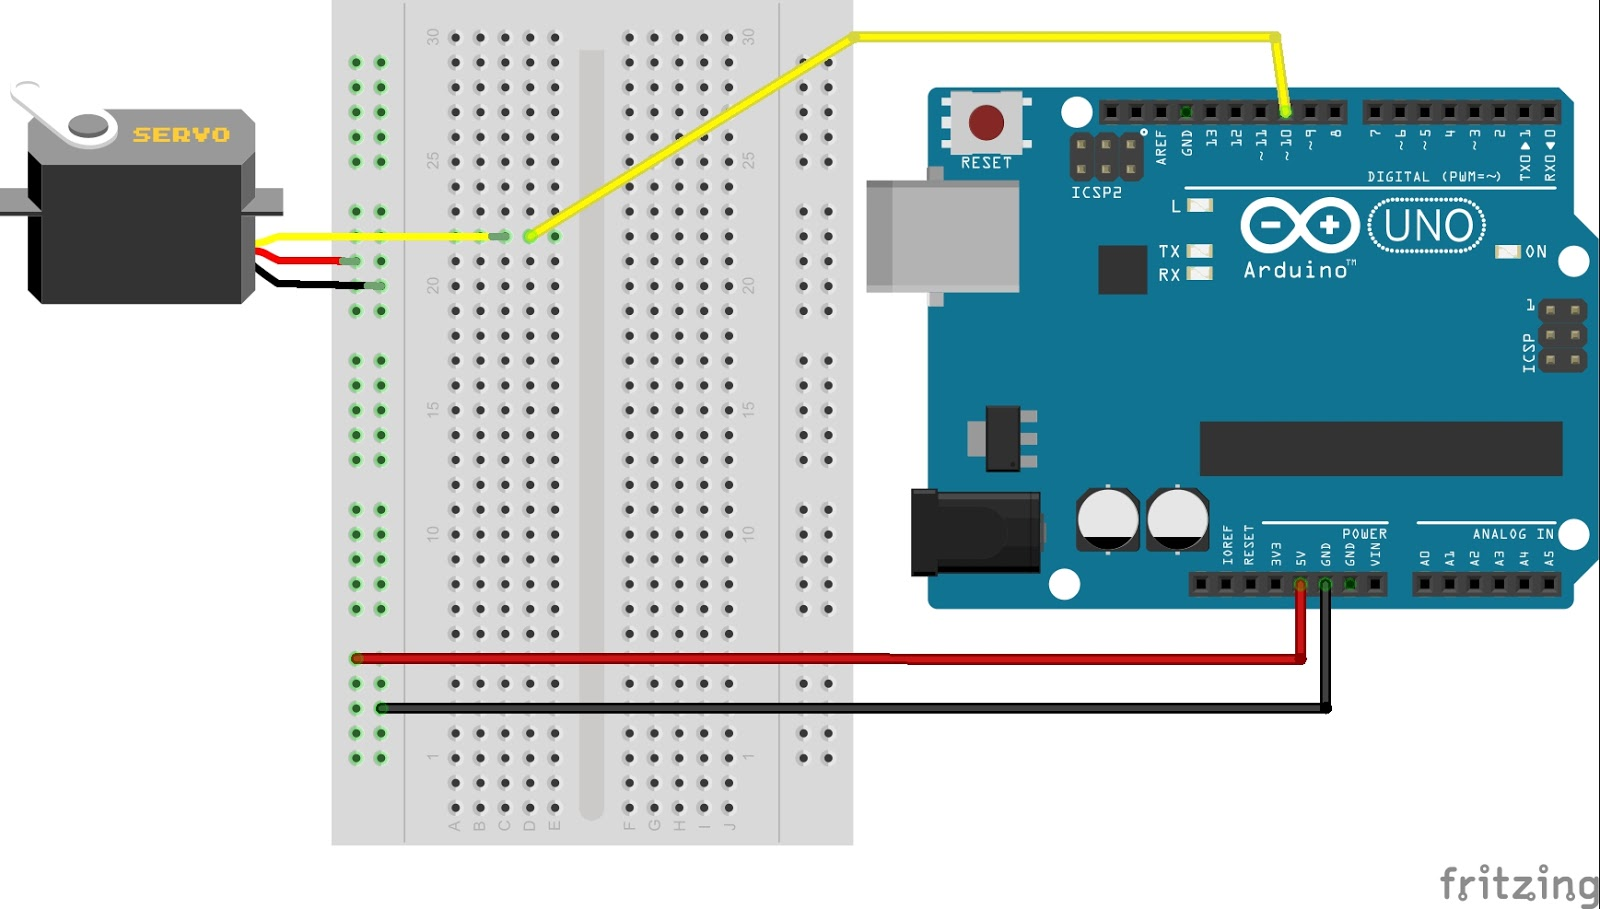 Easiest way to get introduced into the fascinating Arduino world ...